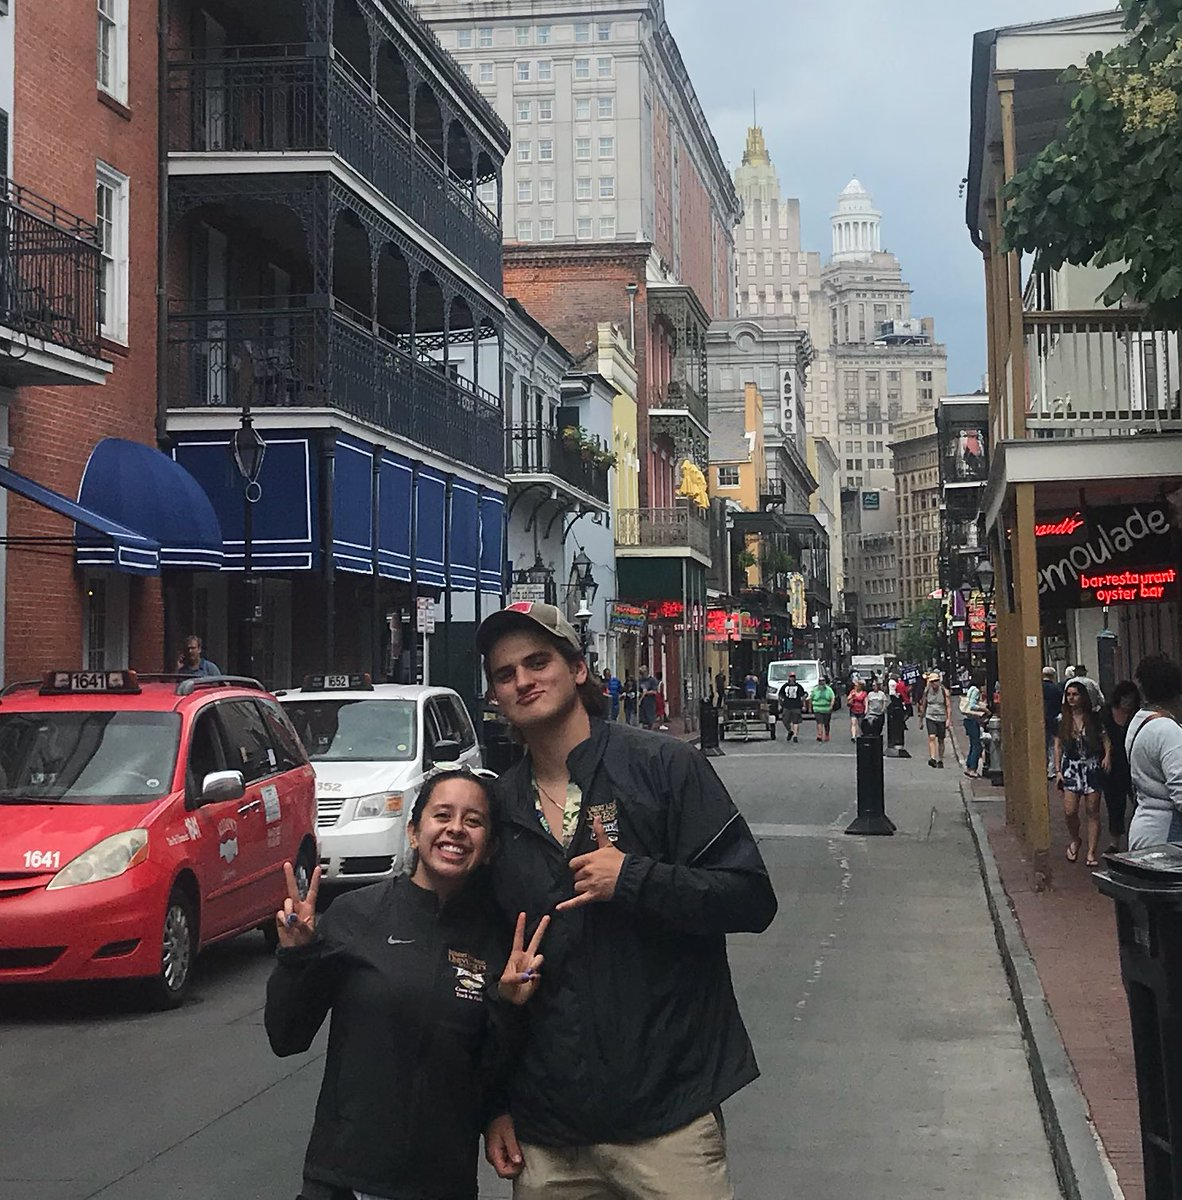 The eagles have landed for the NAIA Nationals Championships  Quick stop to visit the historic Bourbon Street, New Orleans before driving to Gulf Shores, Alabama  #CreatingMemories #TheRMUExperience<br>http://pic.twitter.com/YSC3sbb6Jm